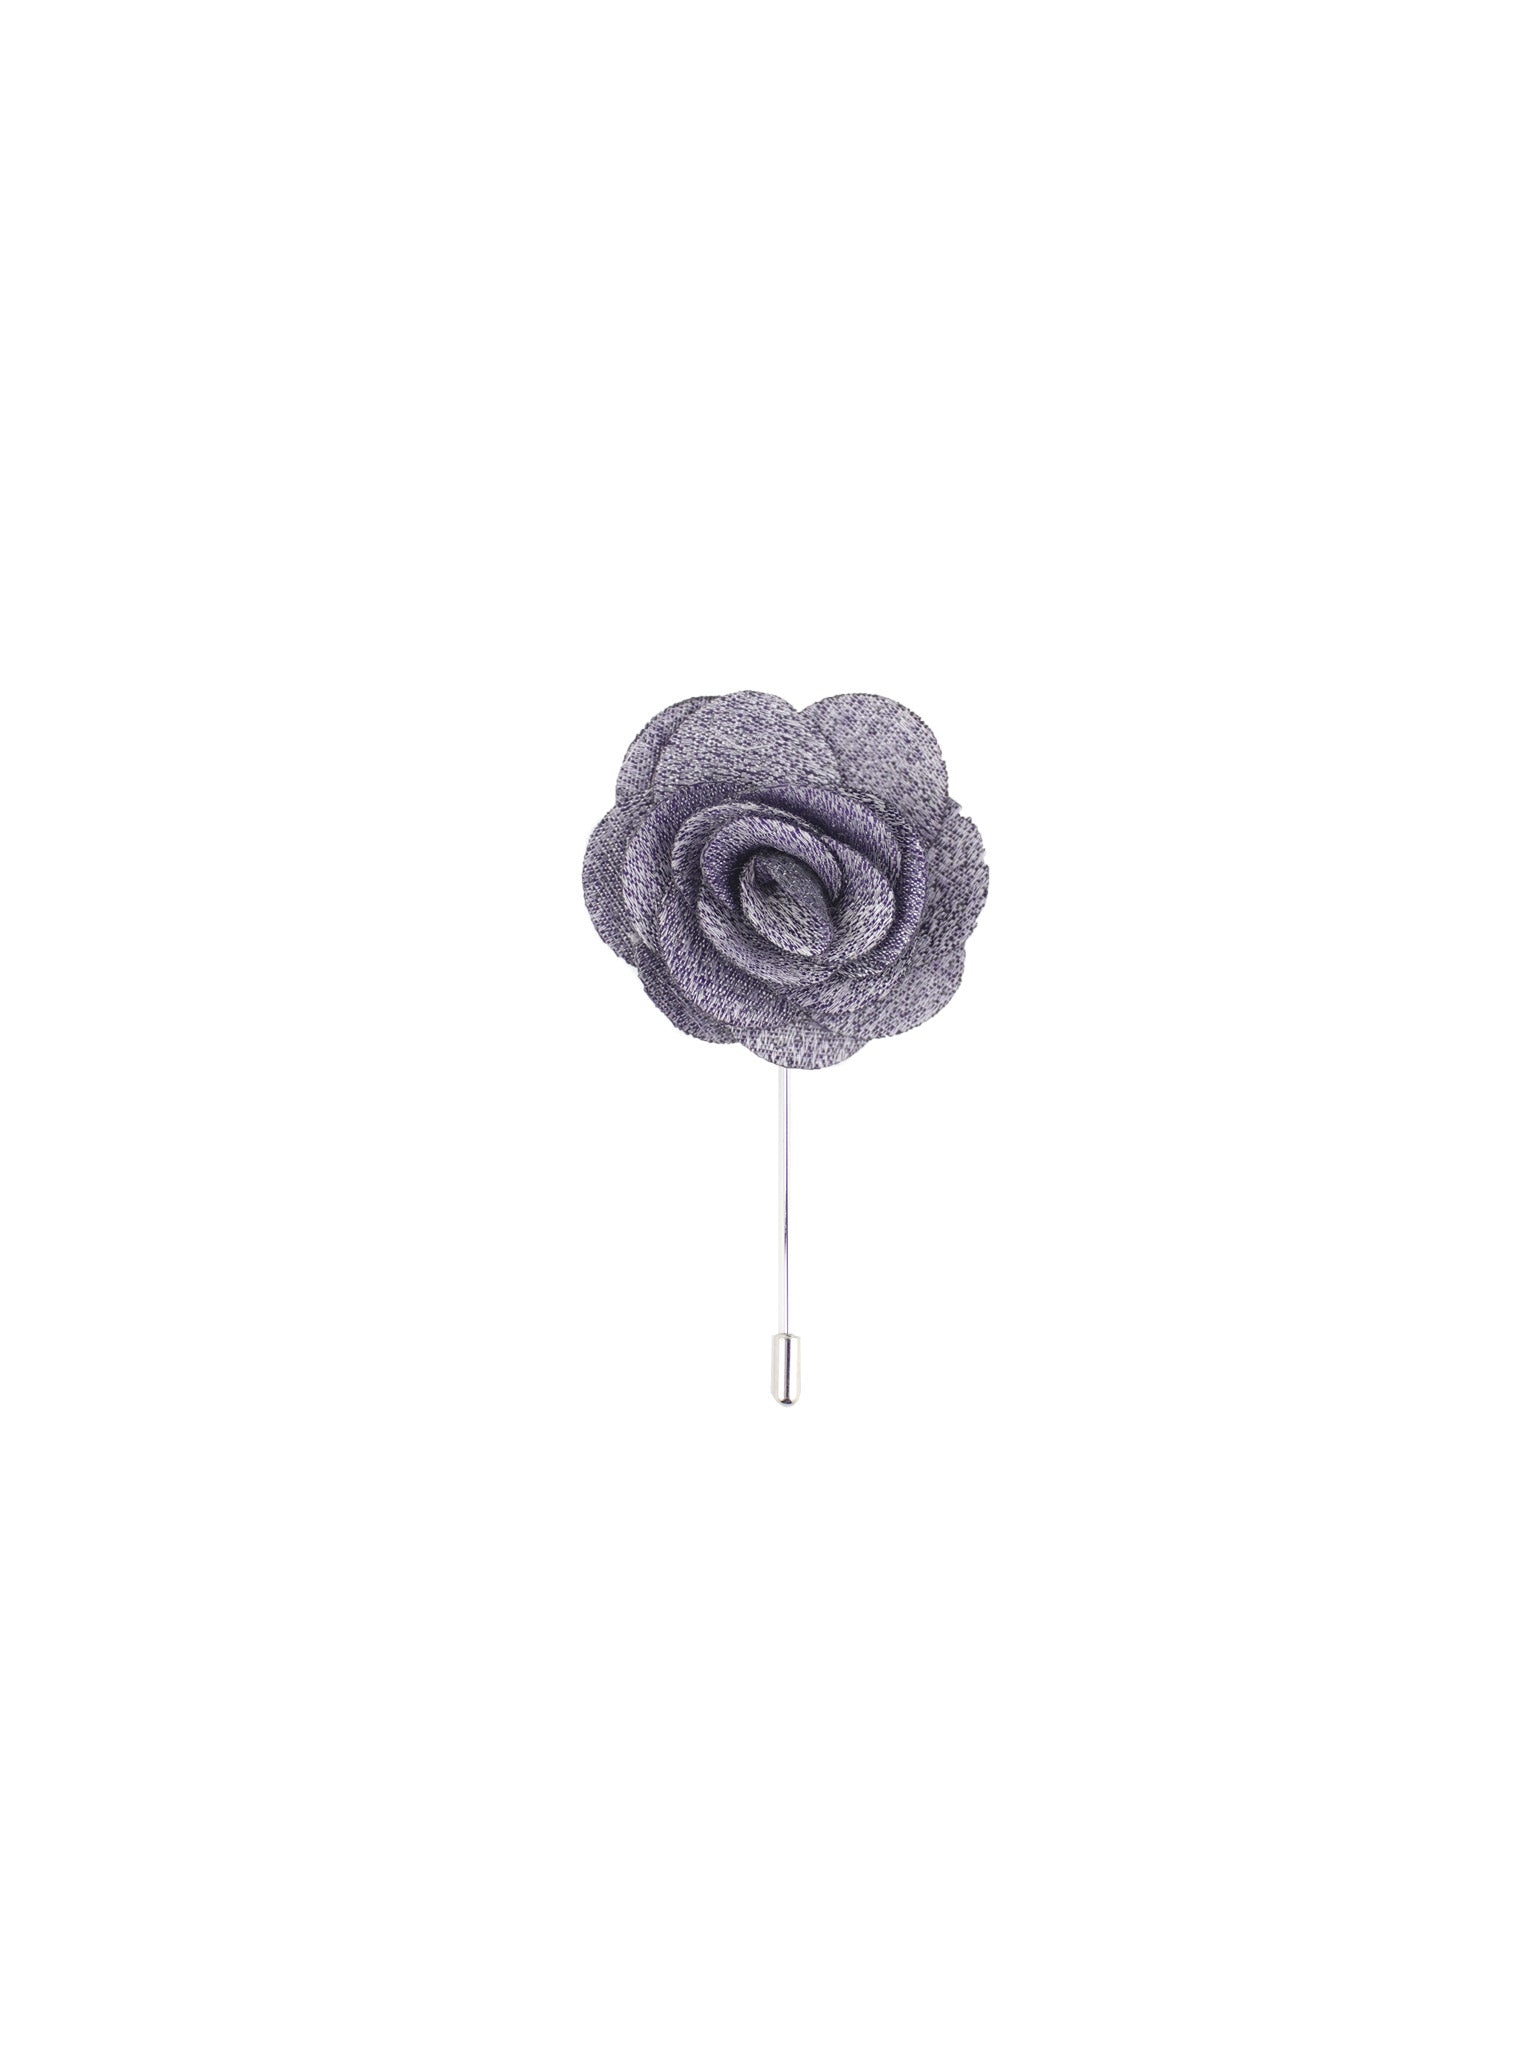 Lavender Cloud Lapel Pin from DIBI